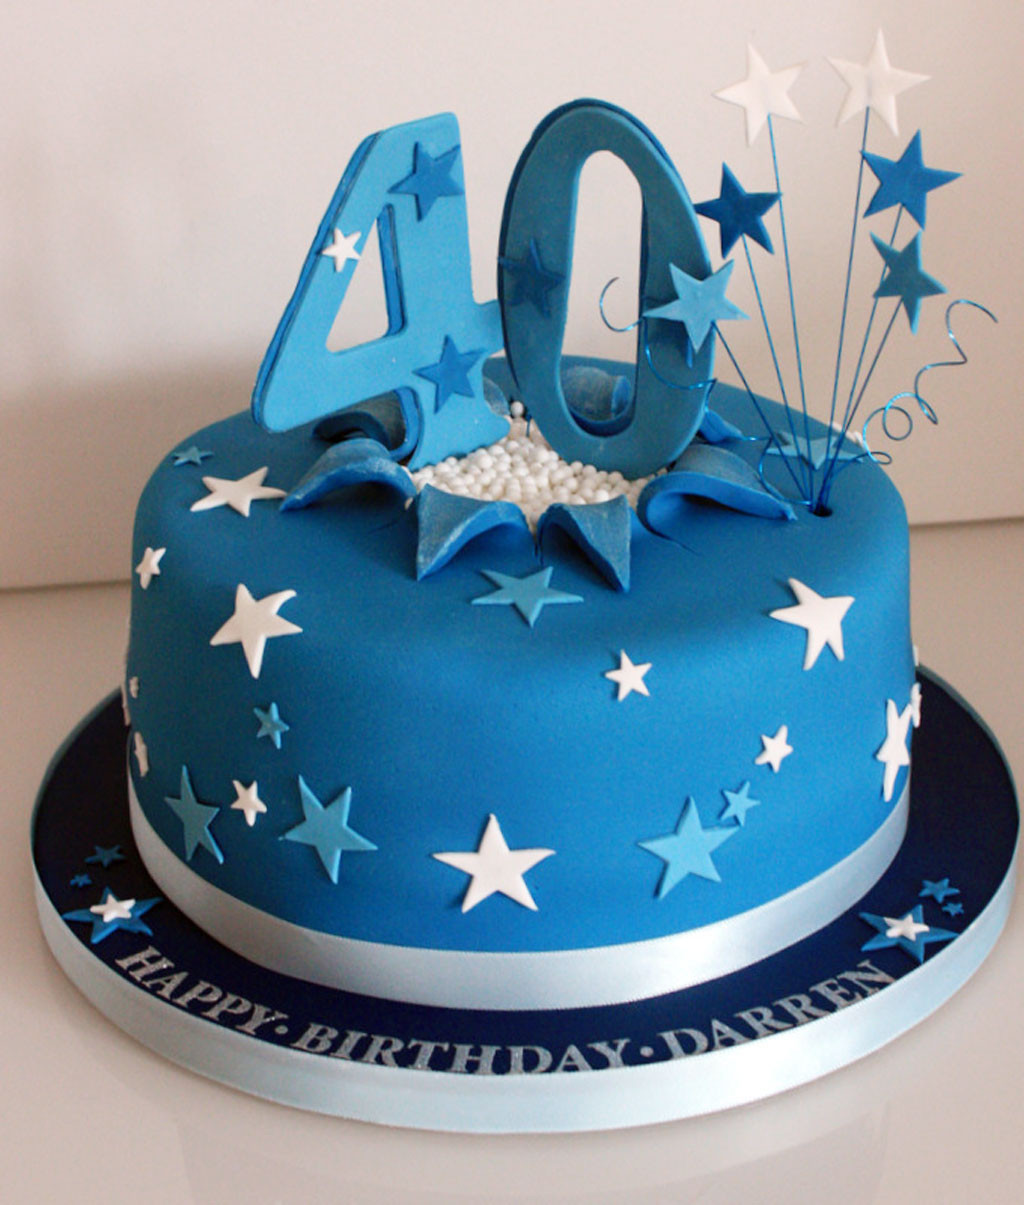 Best ideas about 40th Birthday Cake Ideas . Save or Pin 40th Birthday Cake Ideas Funny Birthday Cake Cake Ideas Now.